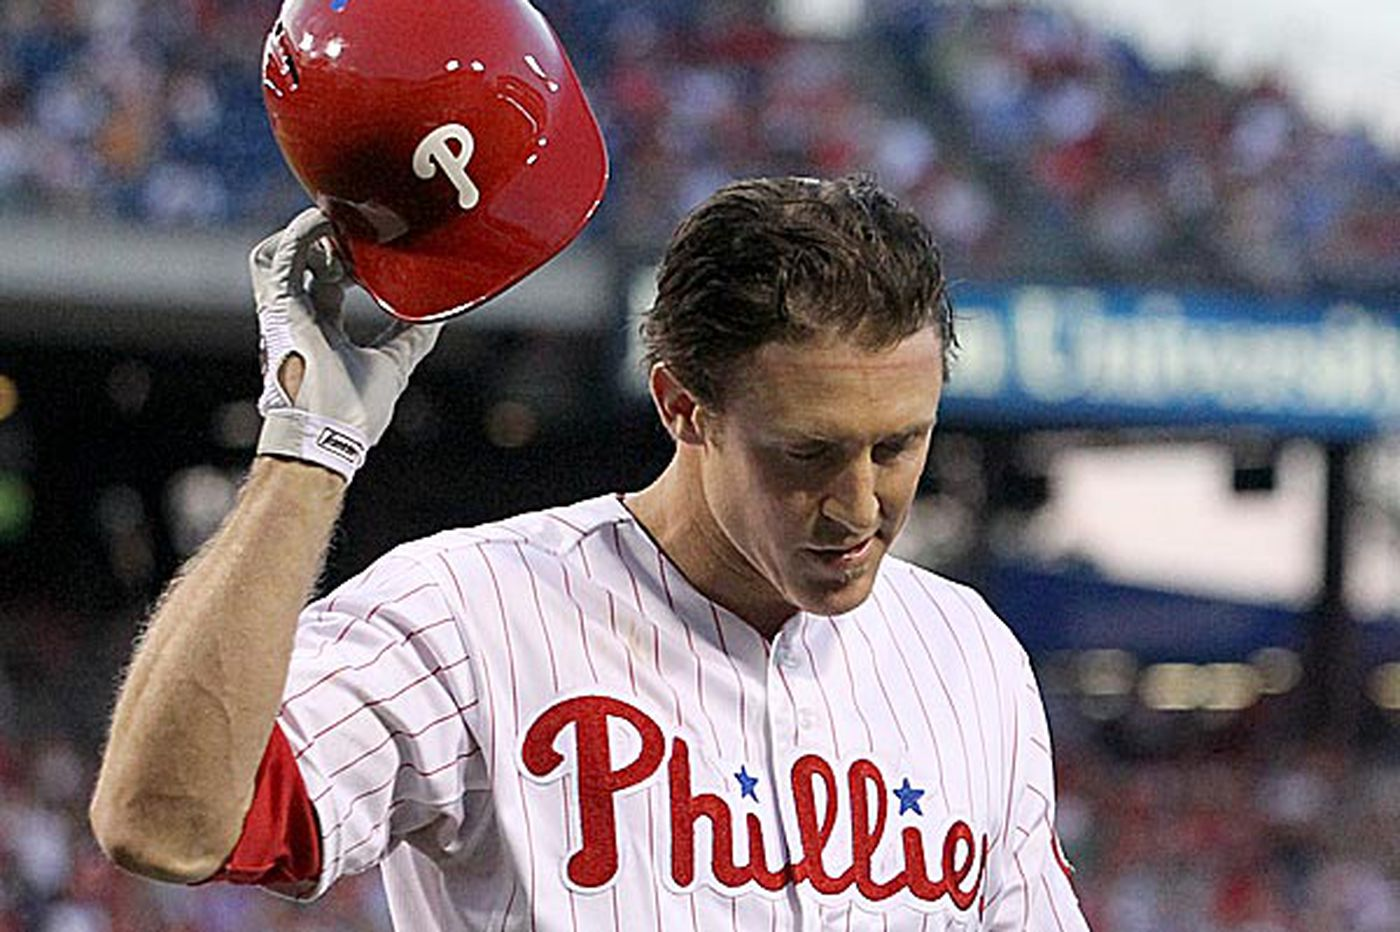 Now is the time for Phillies to trade Utley